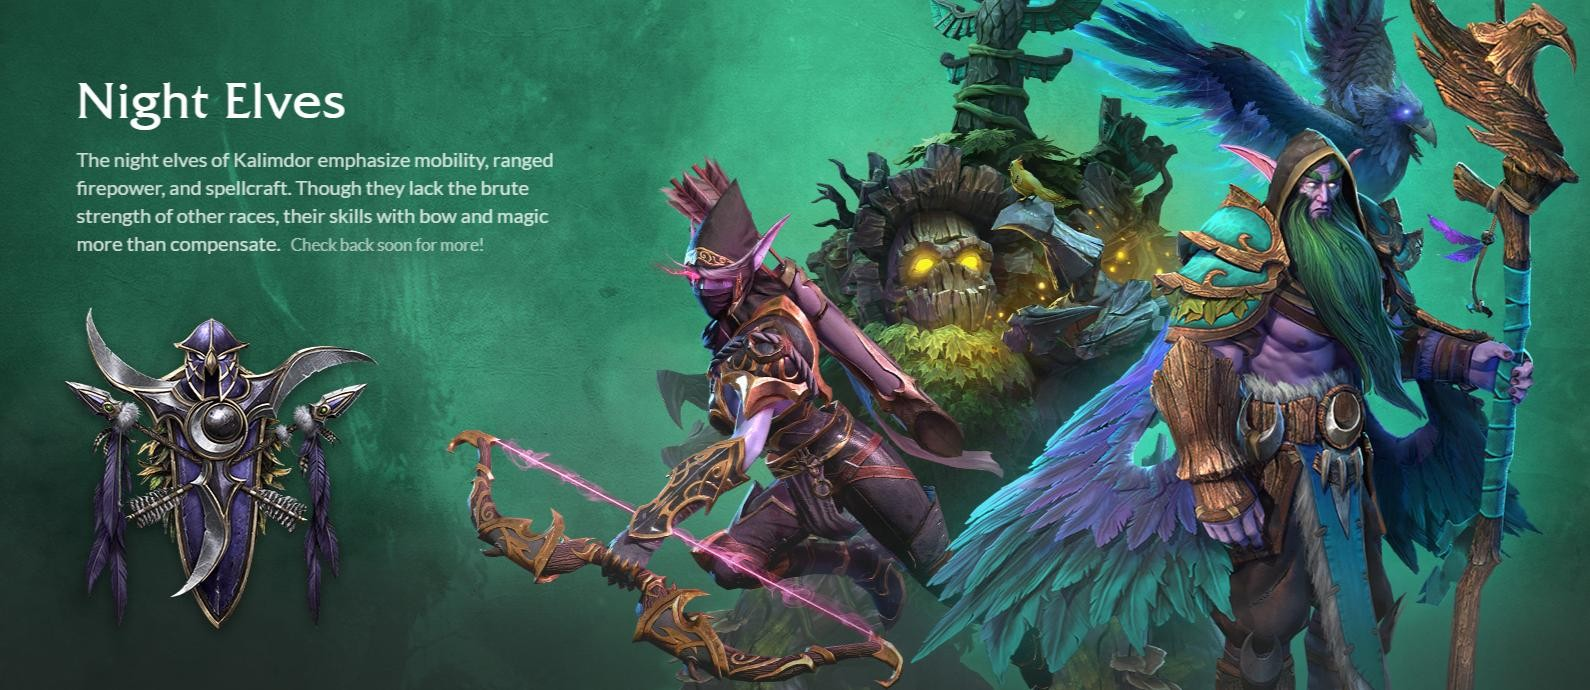 Warcraft 3: Reforged unveils Nightelf art direction and